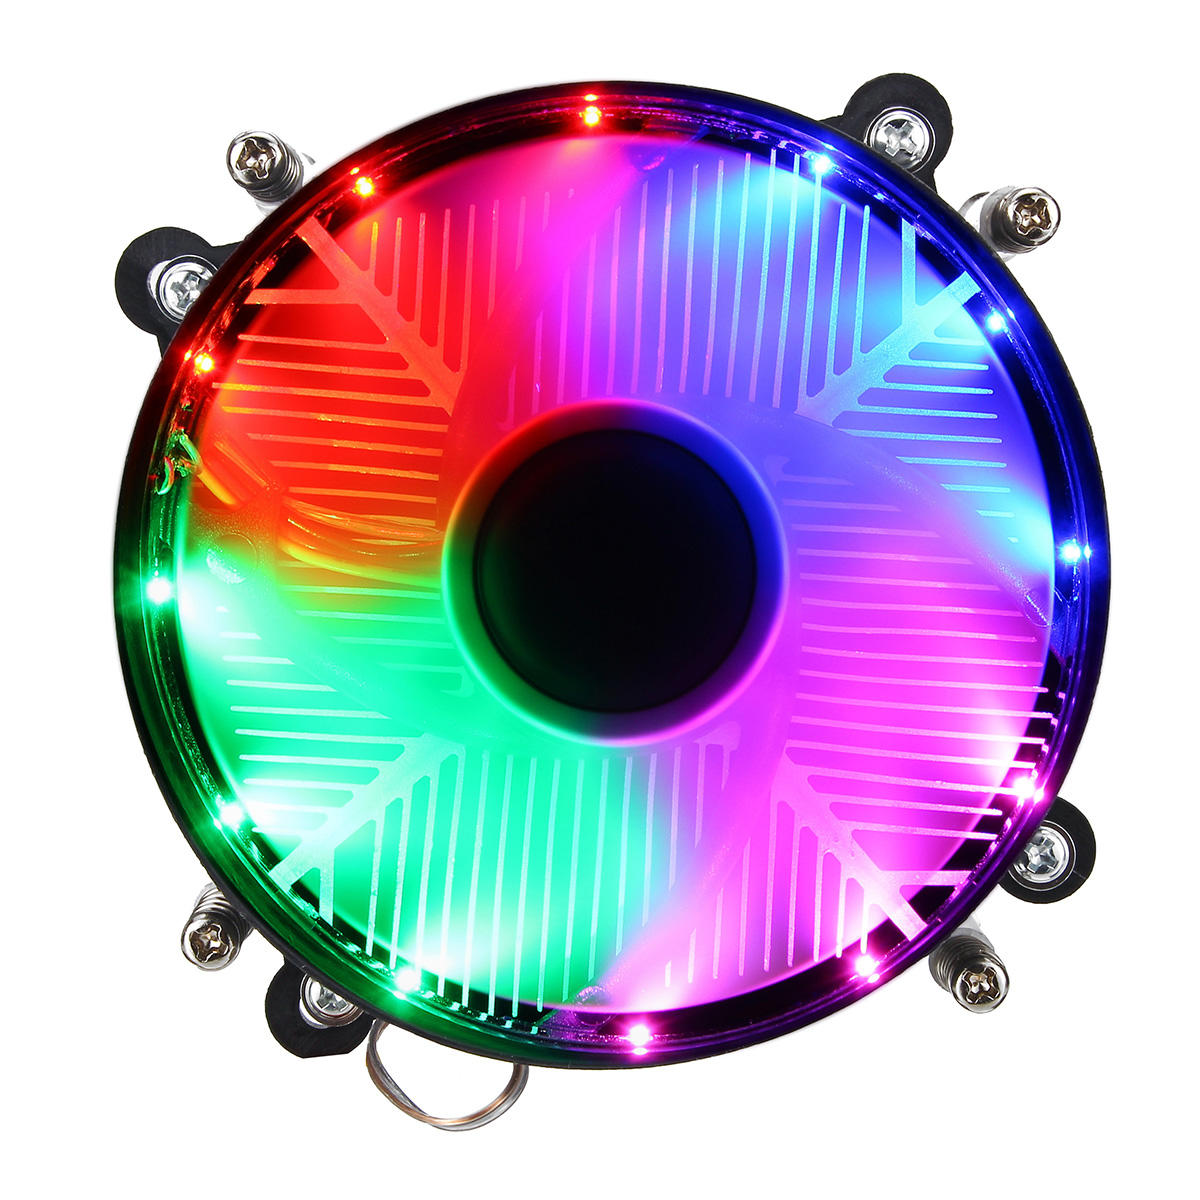 12V DC 3Pin CPU Cooling Fan CPU Cooler Coloful LED for Intel LGA 1150/1151/1155/1156/1366